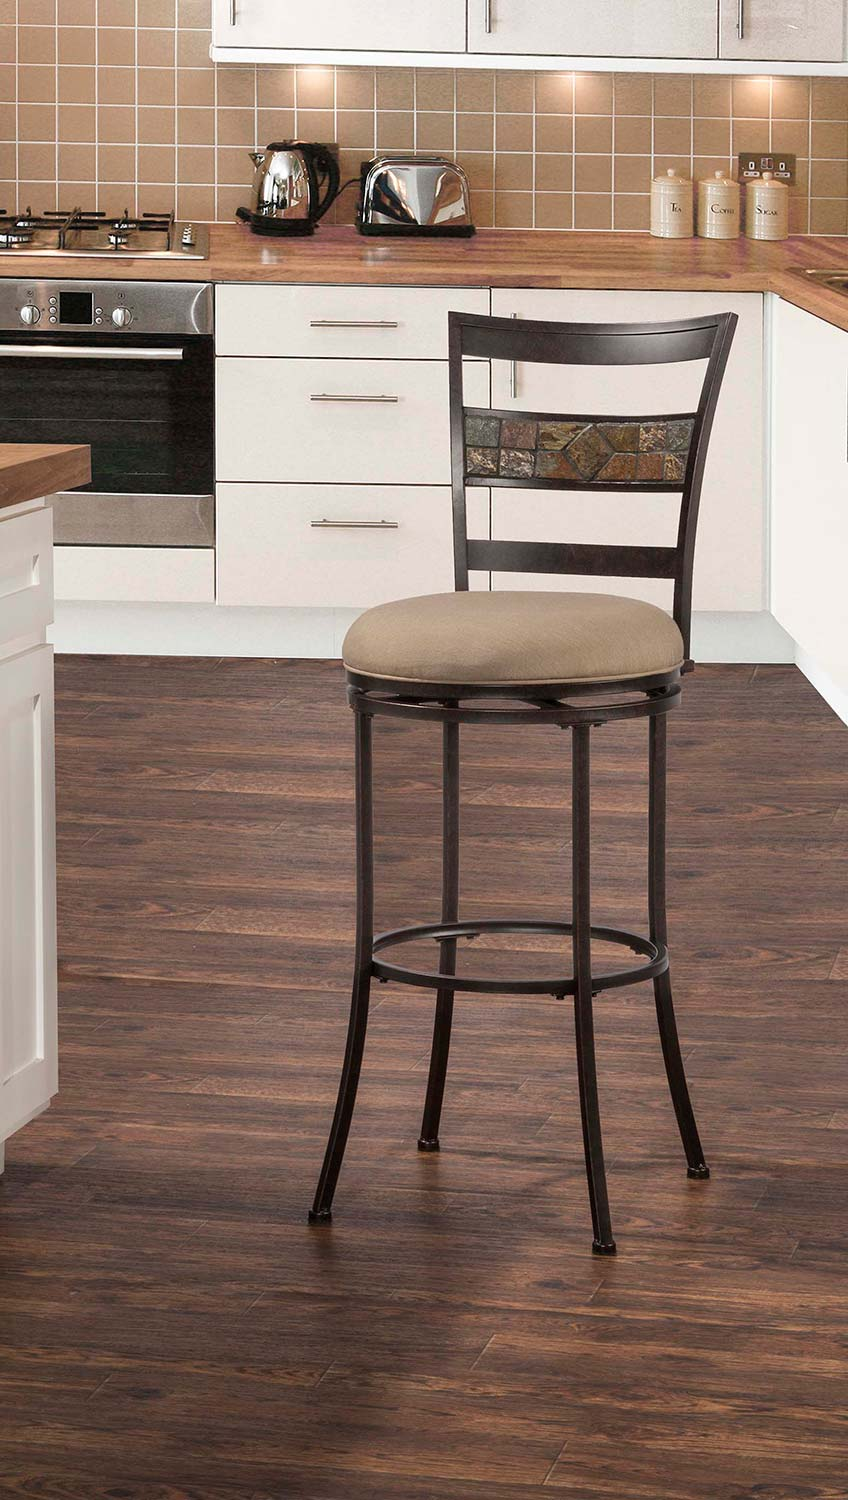 Hillsdale Henning Indoor/Outdoor Swivel Bar Stool - Midnight Mocha